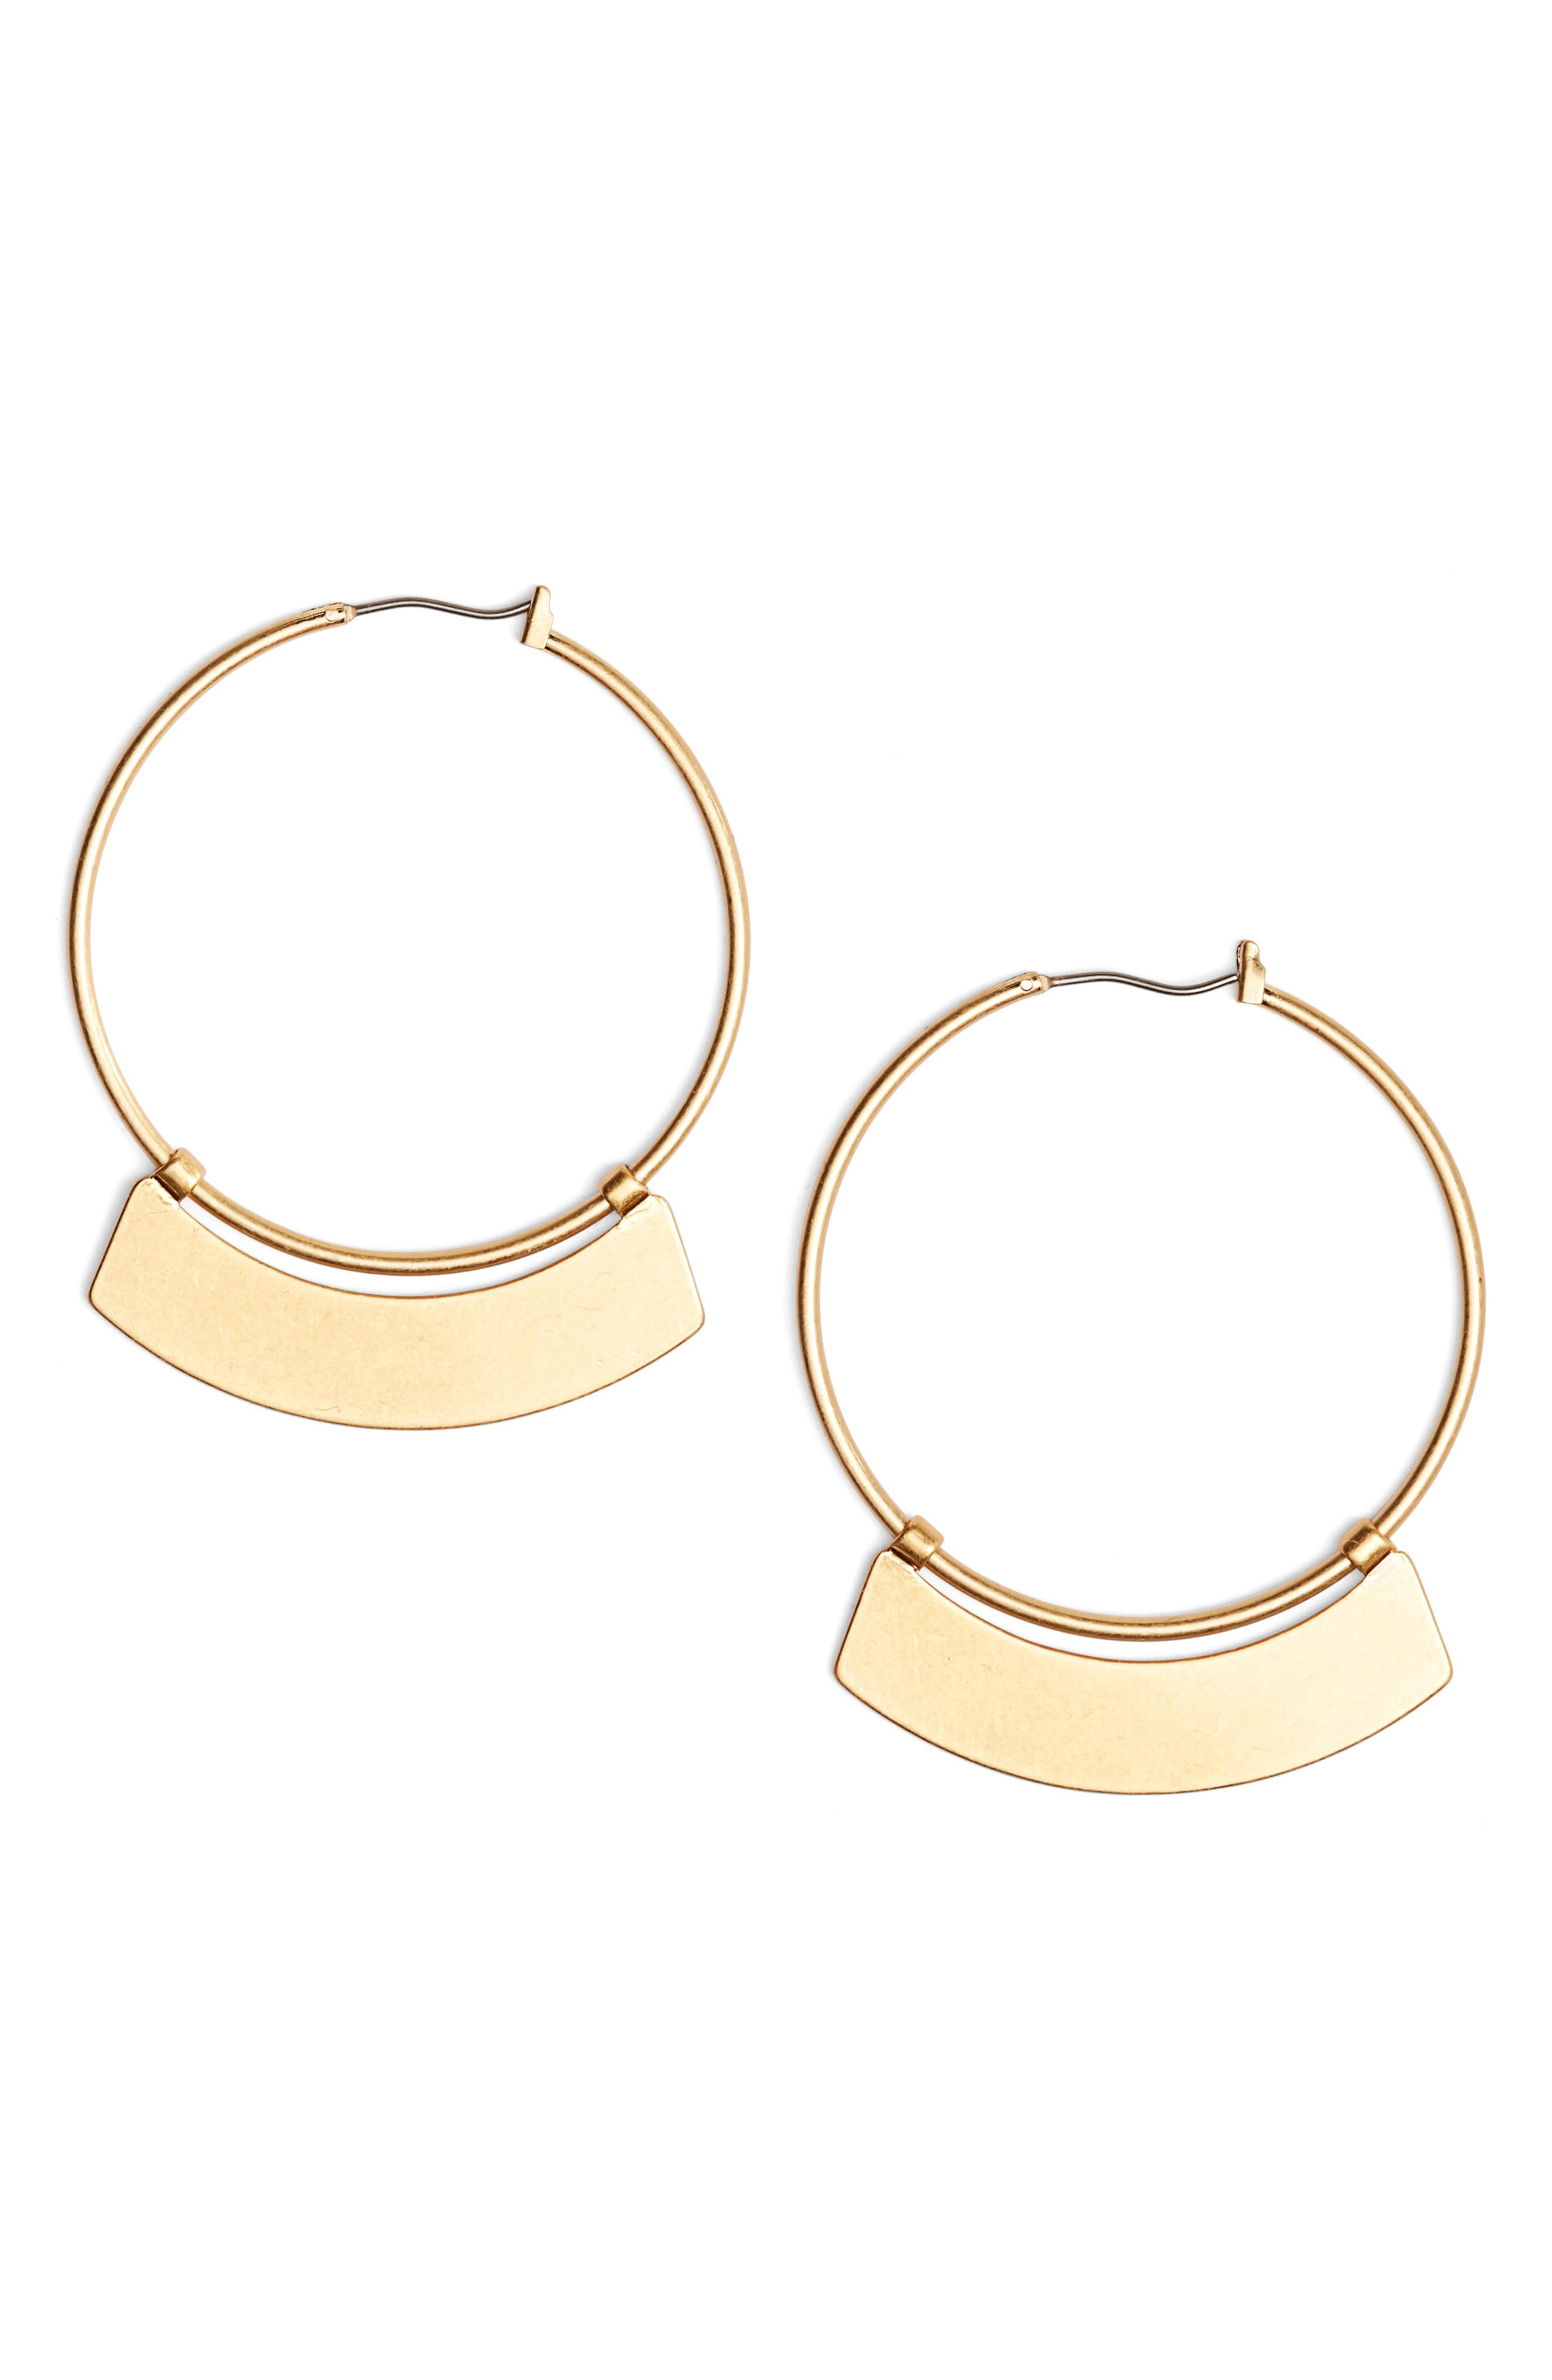 Crescent Hoop Earrings,                         Main,                         color, Light Worn Gold